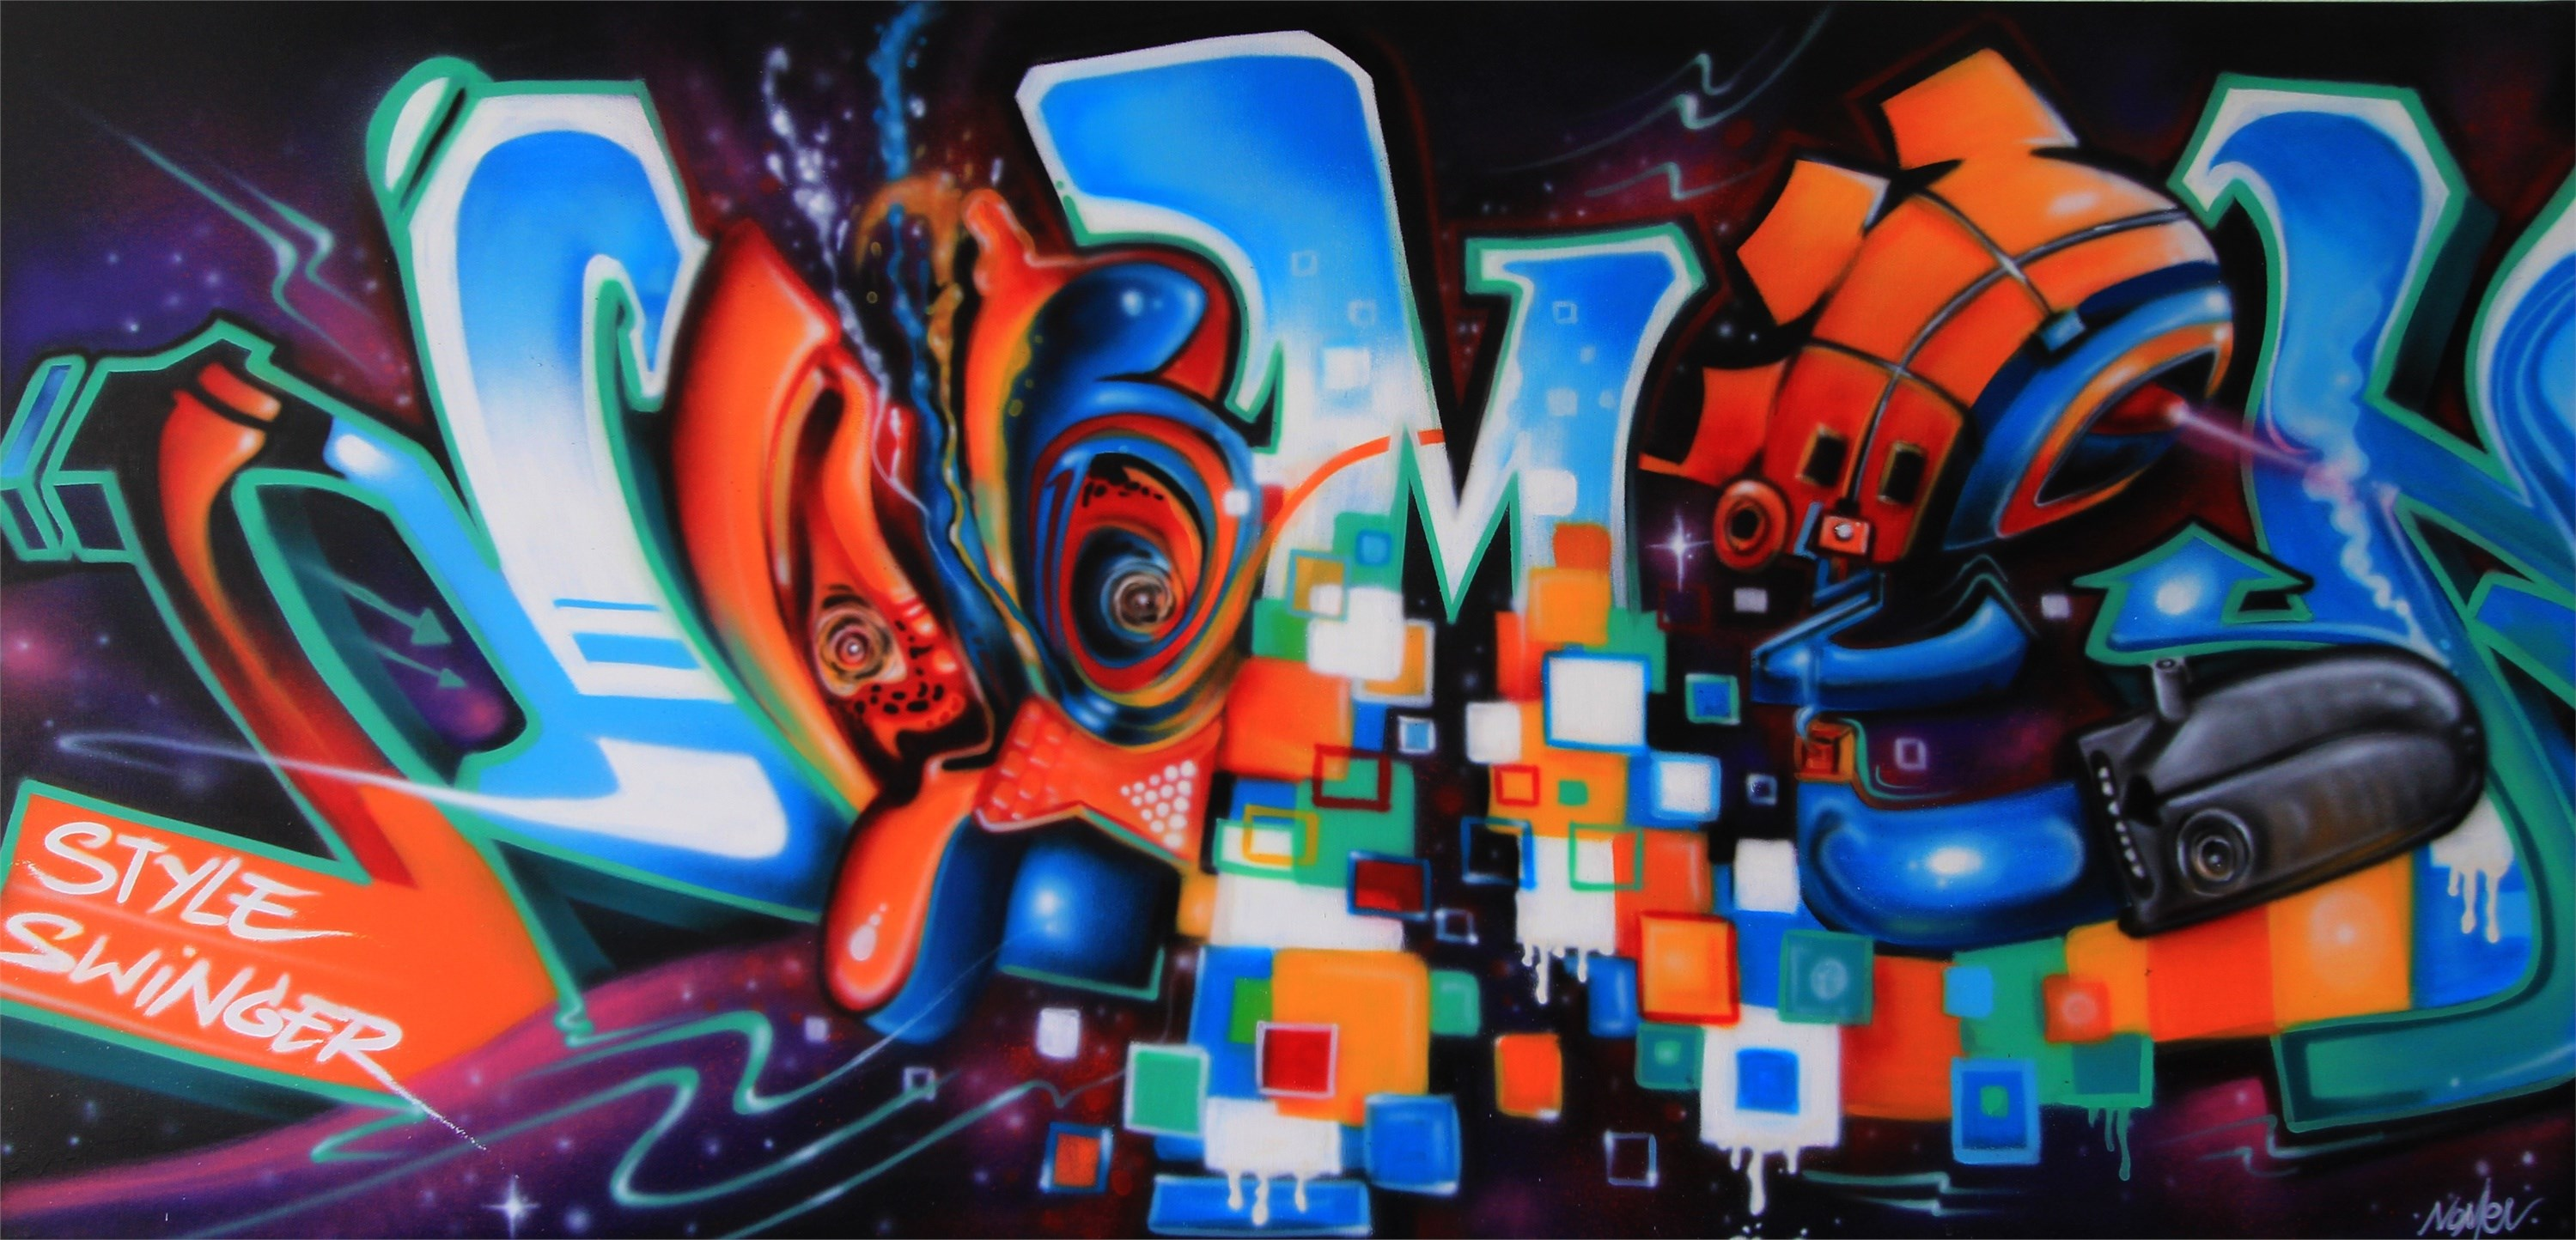 Style Swinger, original Abstract Graffiti Painting by Nomen Nuno